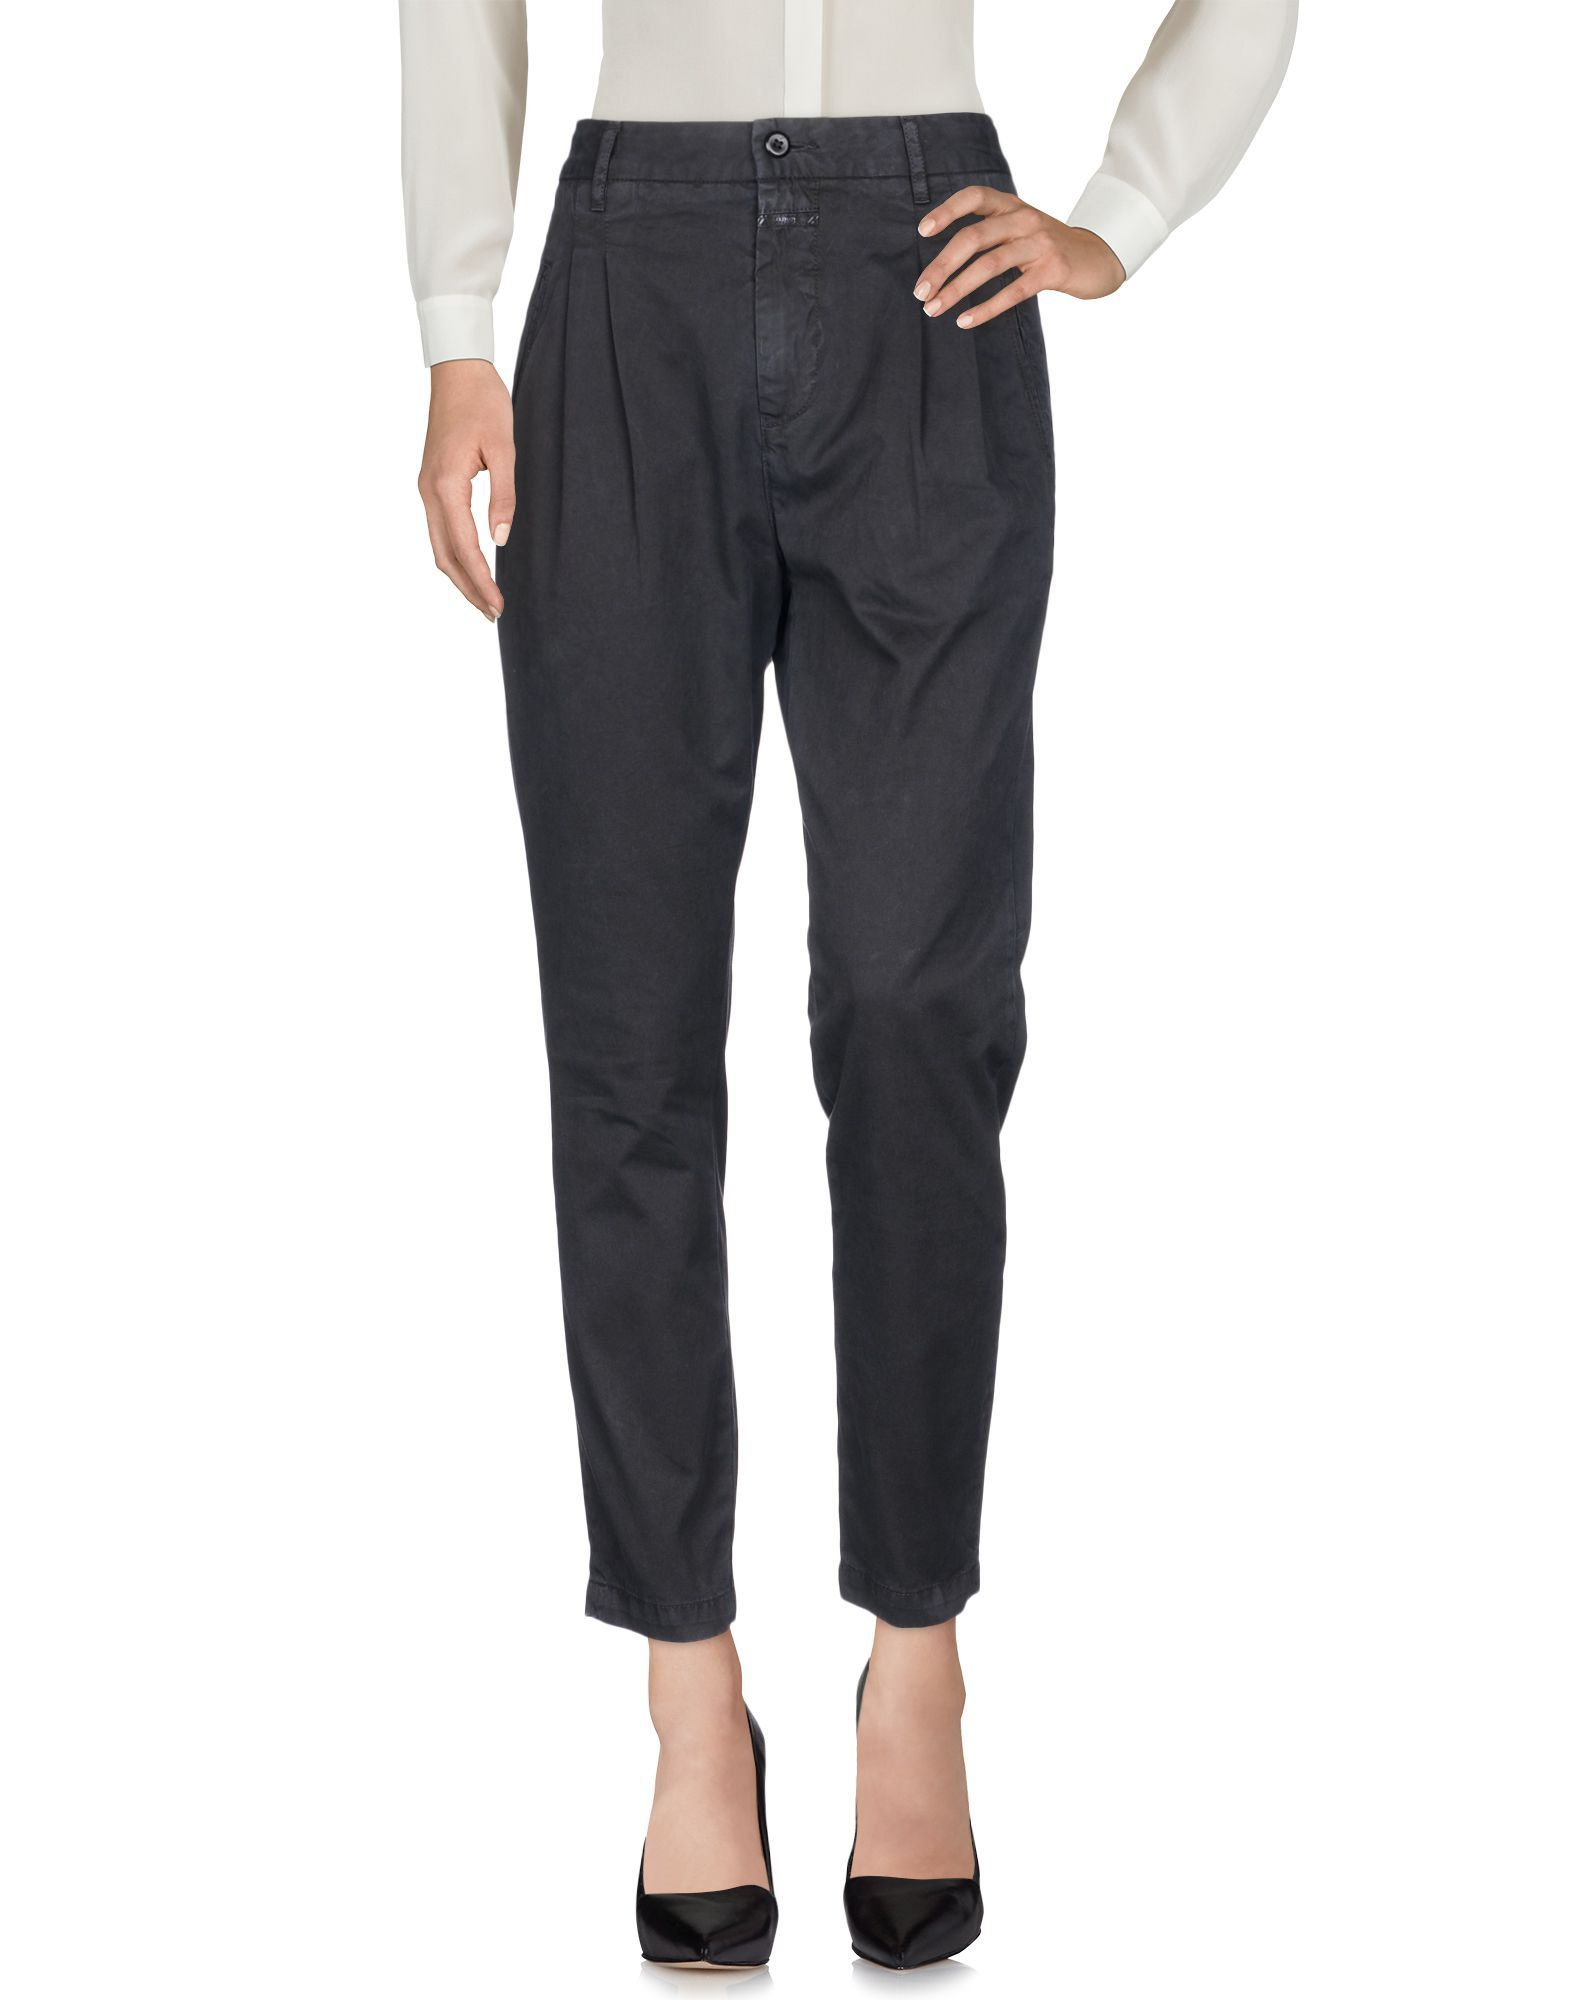 TROUSERS Closed Black Woman Cotton